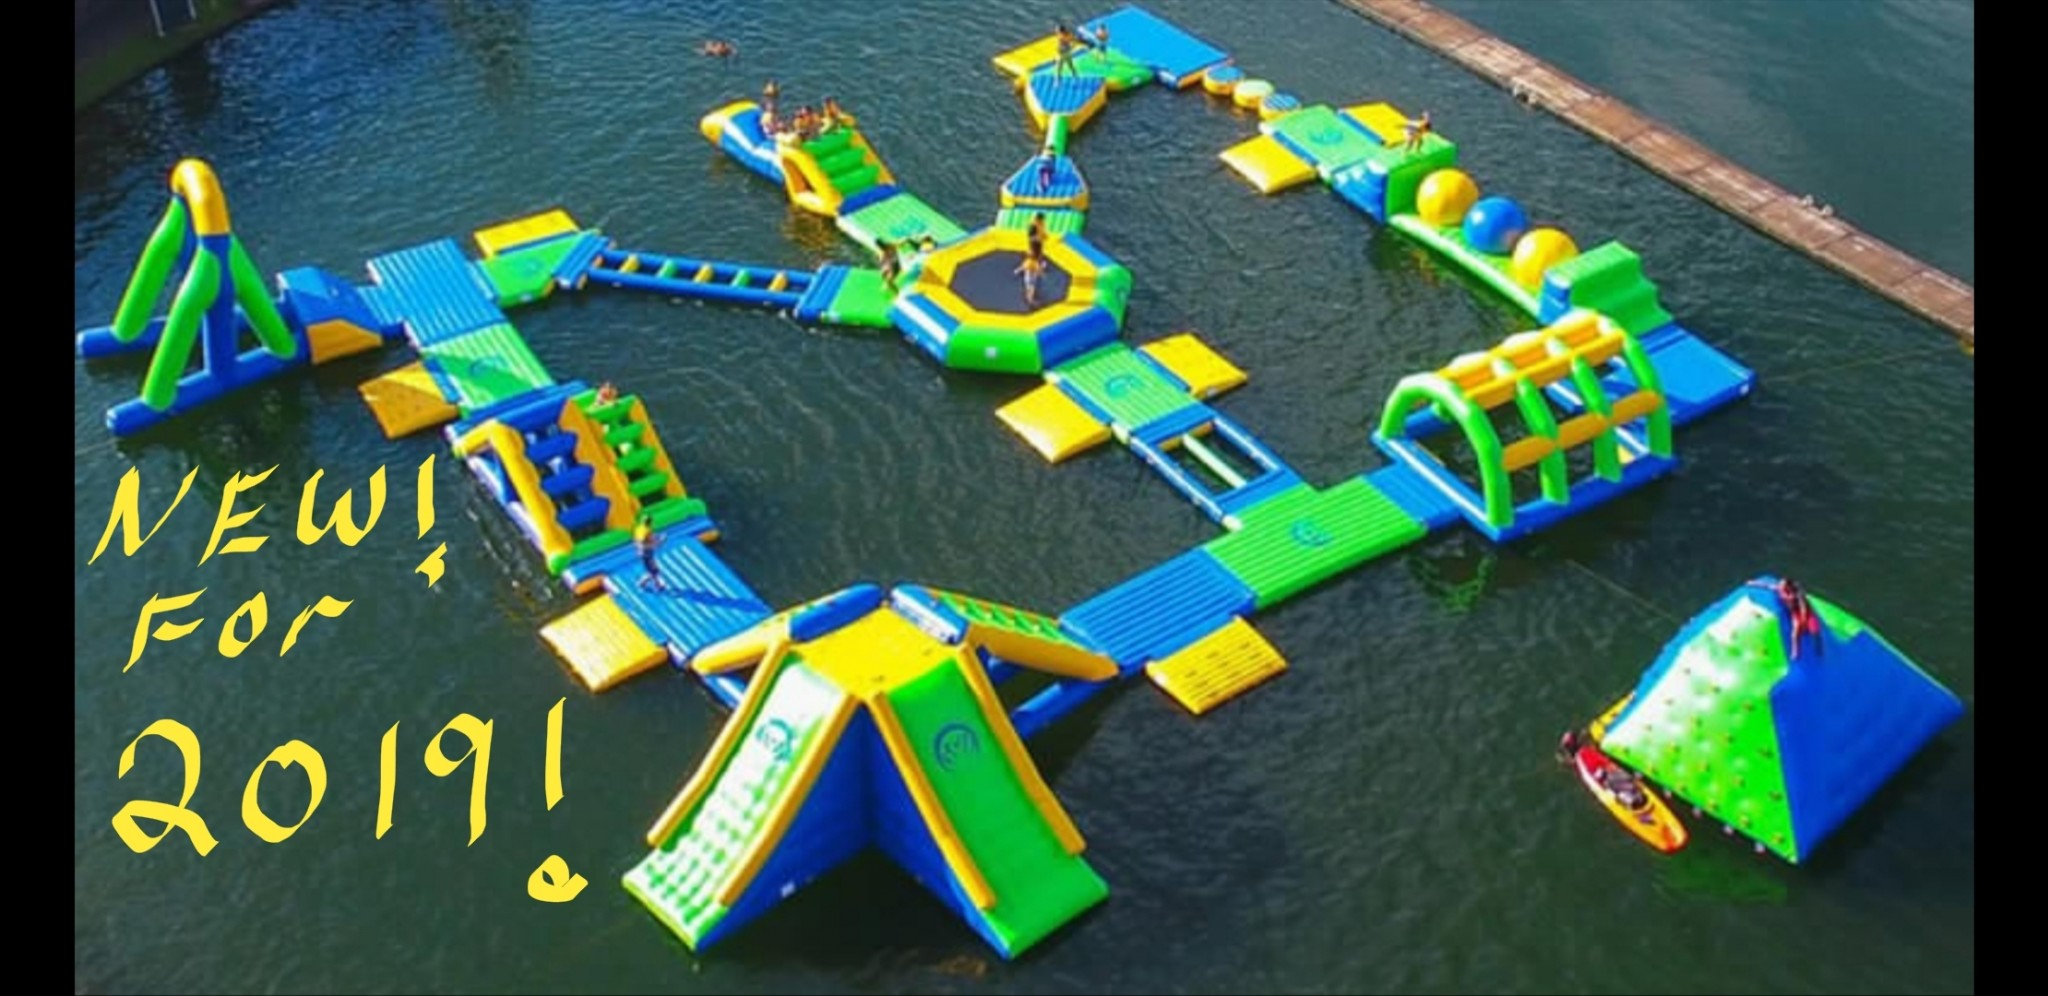 NEW FOR WEST LAKE WILLY WATER PARK SANDBAVNKS Filling Up Fast This Year!